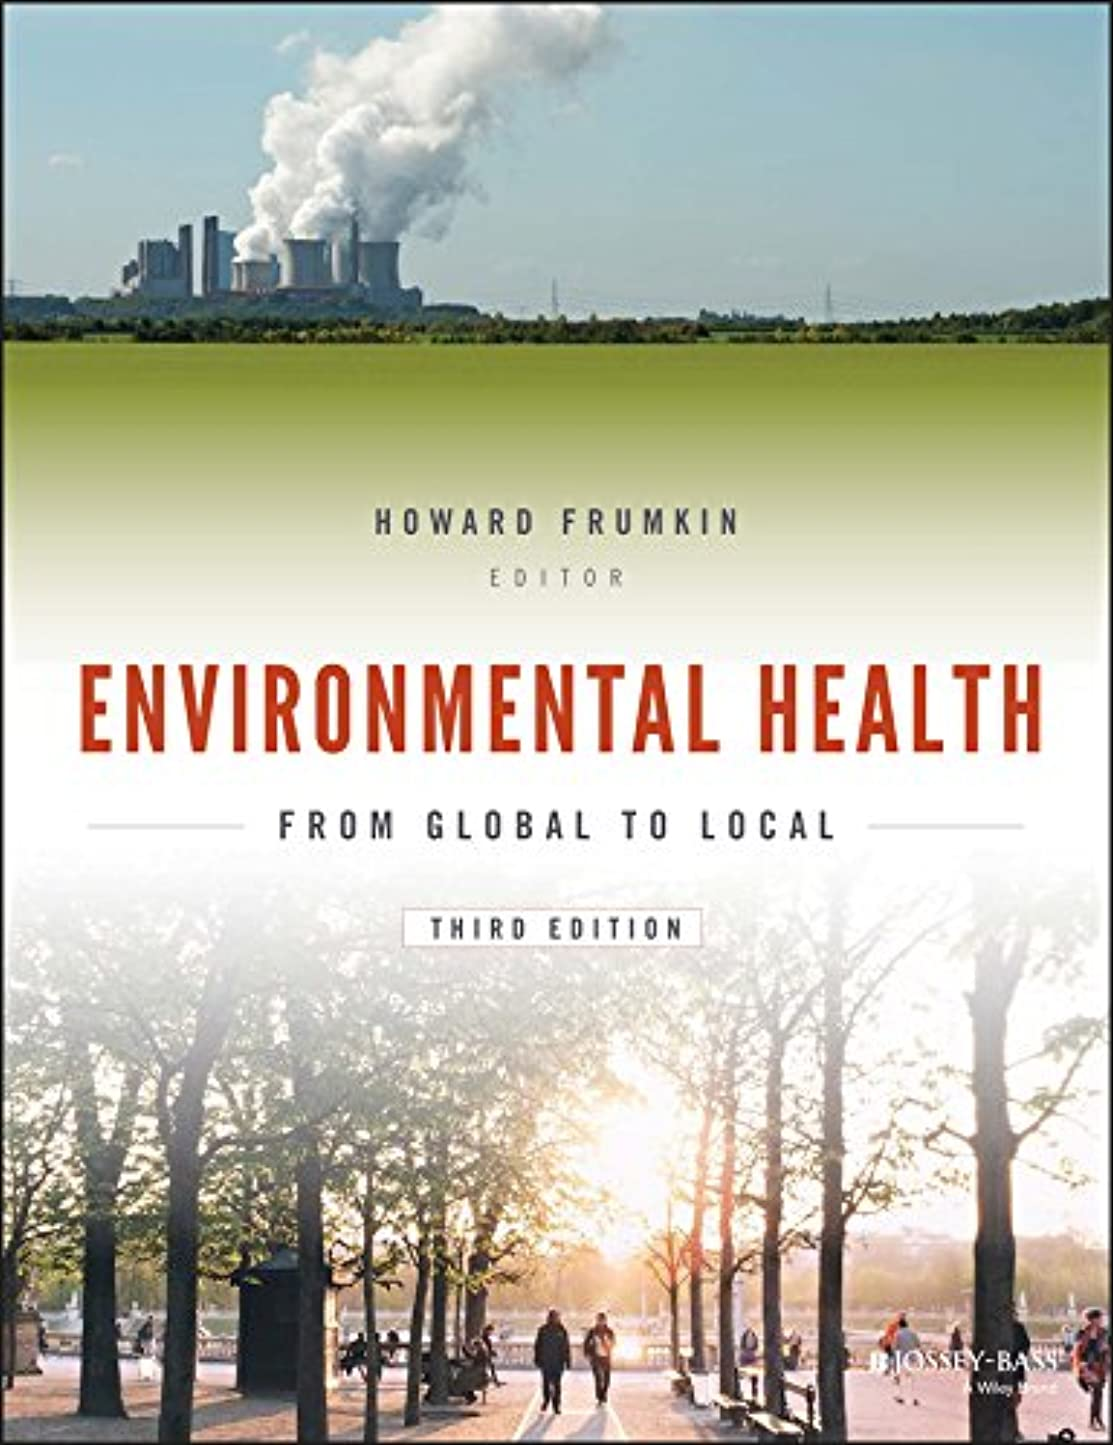 カウンターパート紛争王朝Environmental Health: From Global to Local (Public Health/Environmental Health) (English Edition)